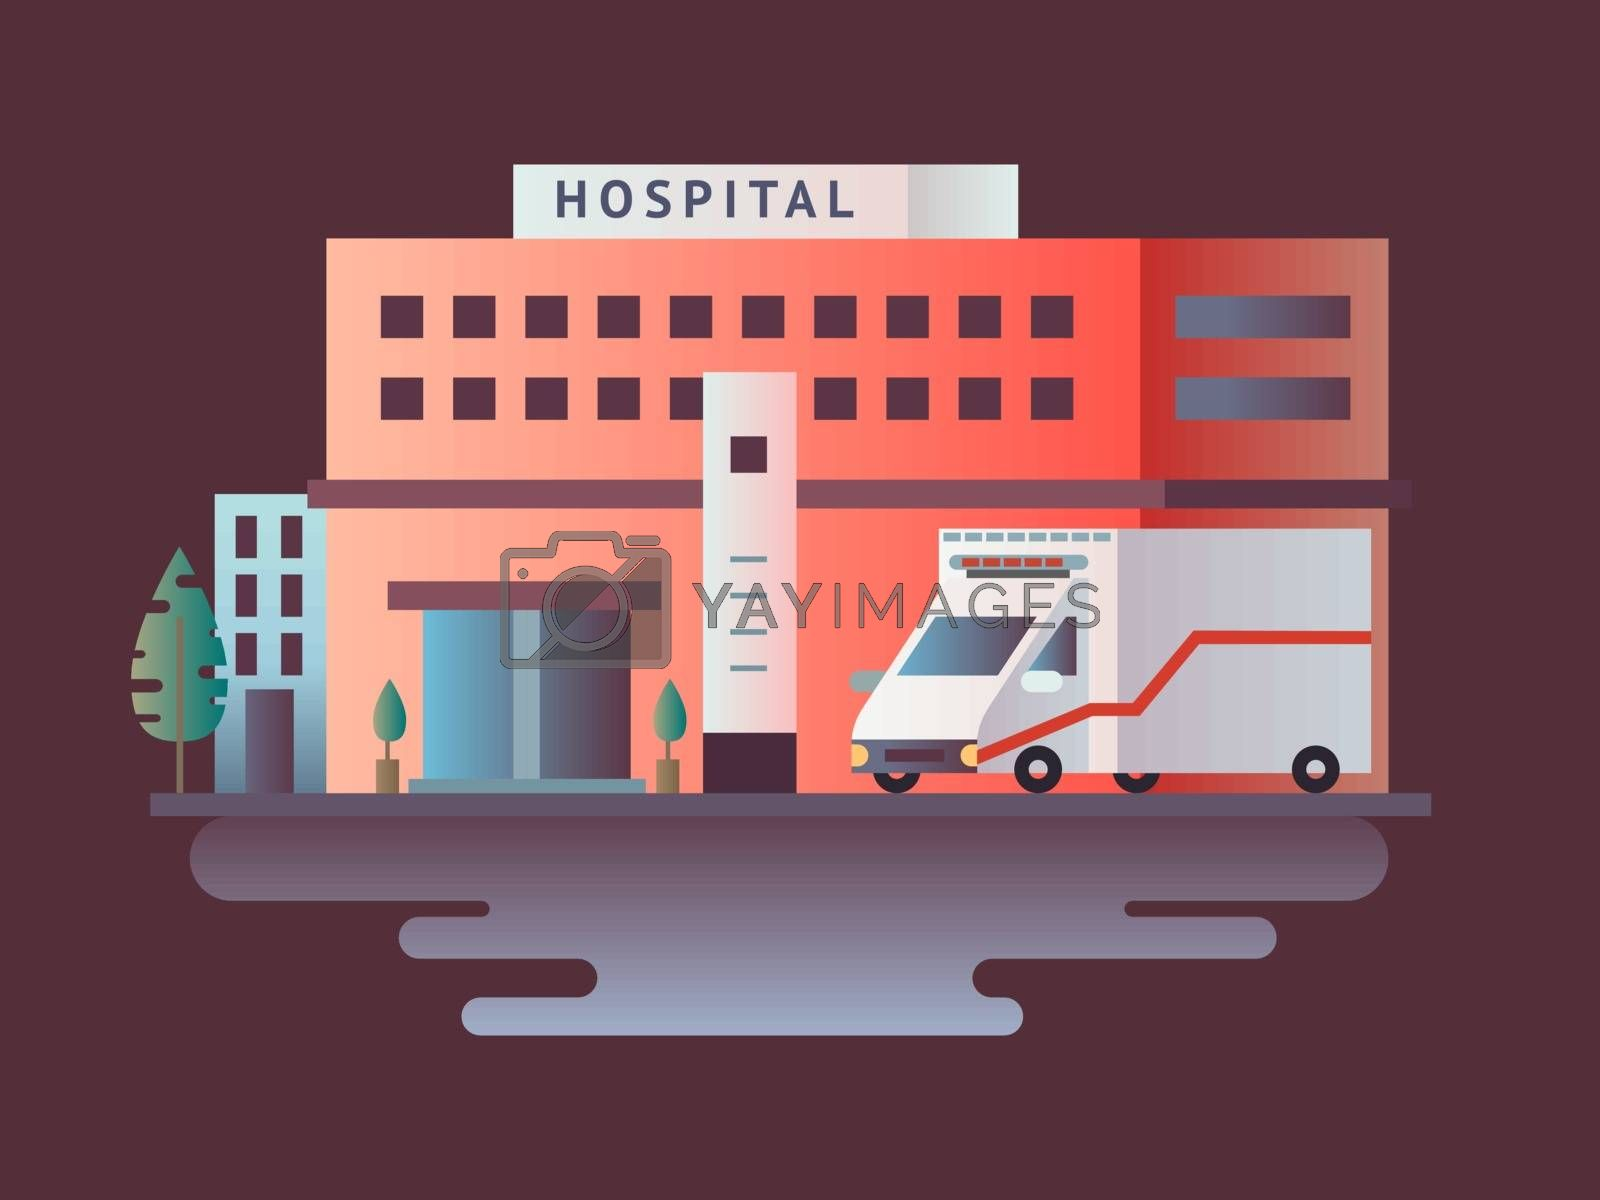 Hospital building design flat. Medical health, care and healthcare, architecture clinic, vector illustration